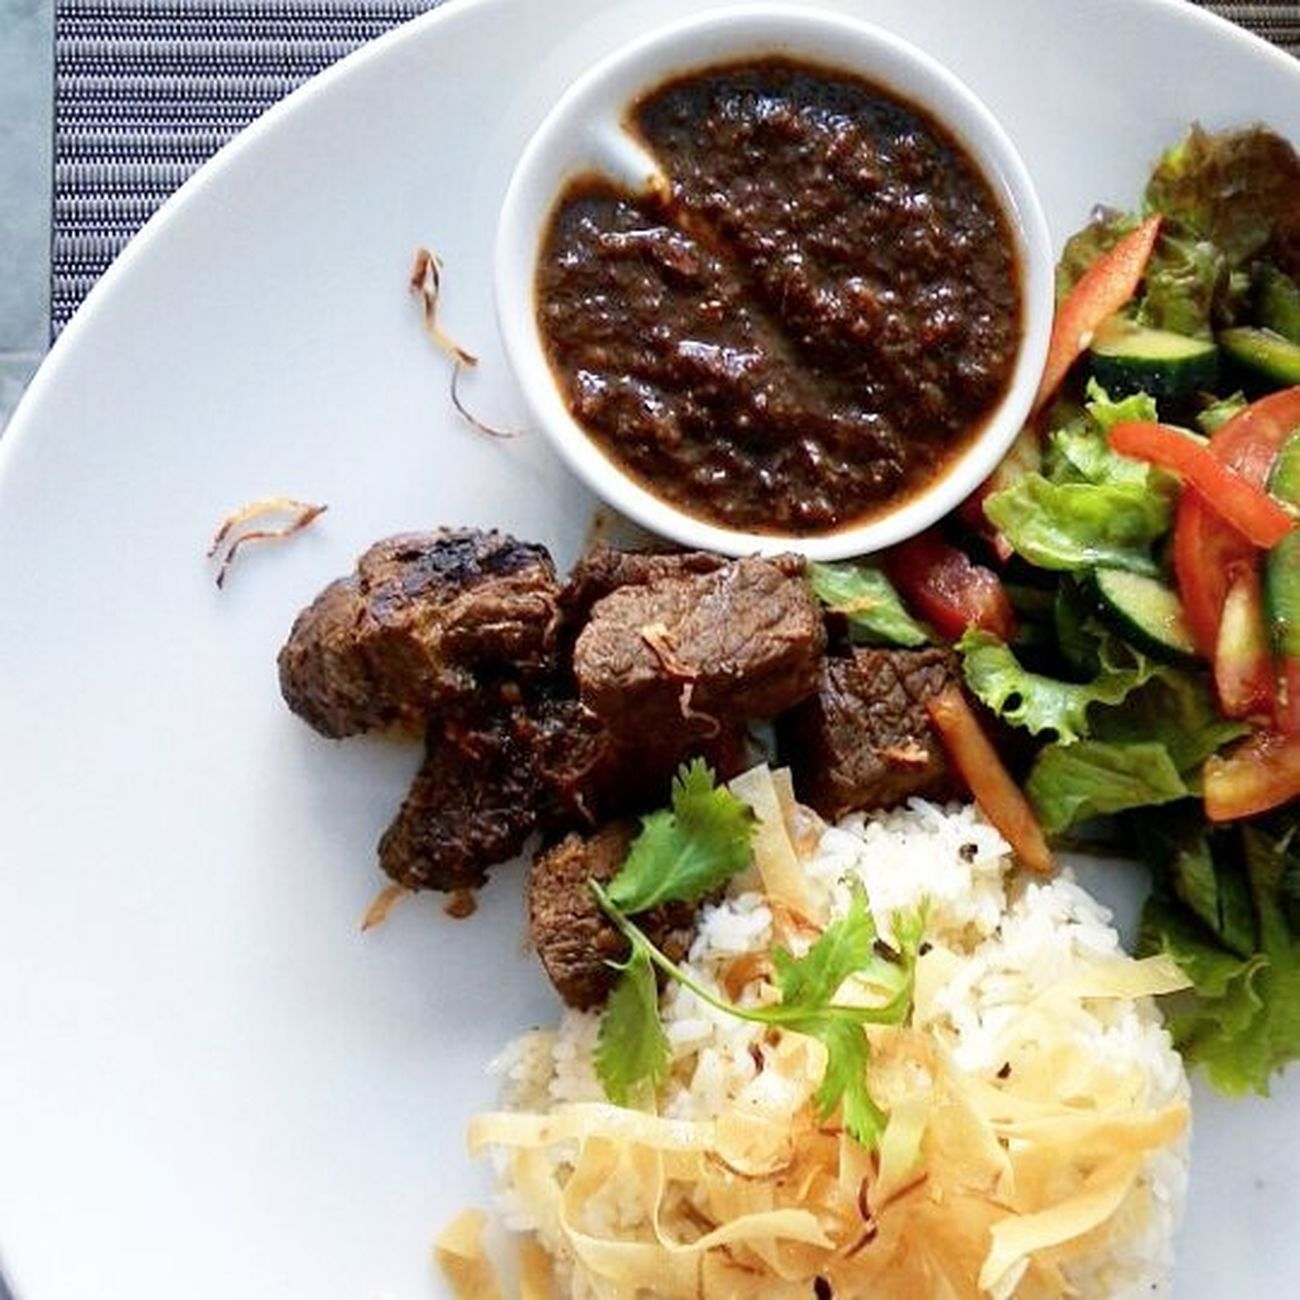 Bon appetit! Lunch Fourpoints Indonesiantaste Beefrendang rendang sapi beefstew spices happytummy yummy localtaste culinary kuliner goodfood foodie salads taste sauce indonesianfood menu foodporn food foodphoto Kuta Bali Indonesia